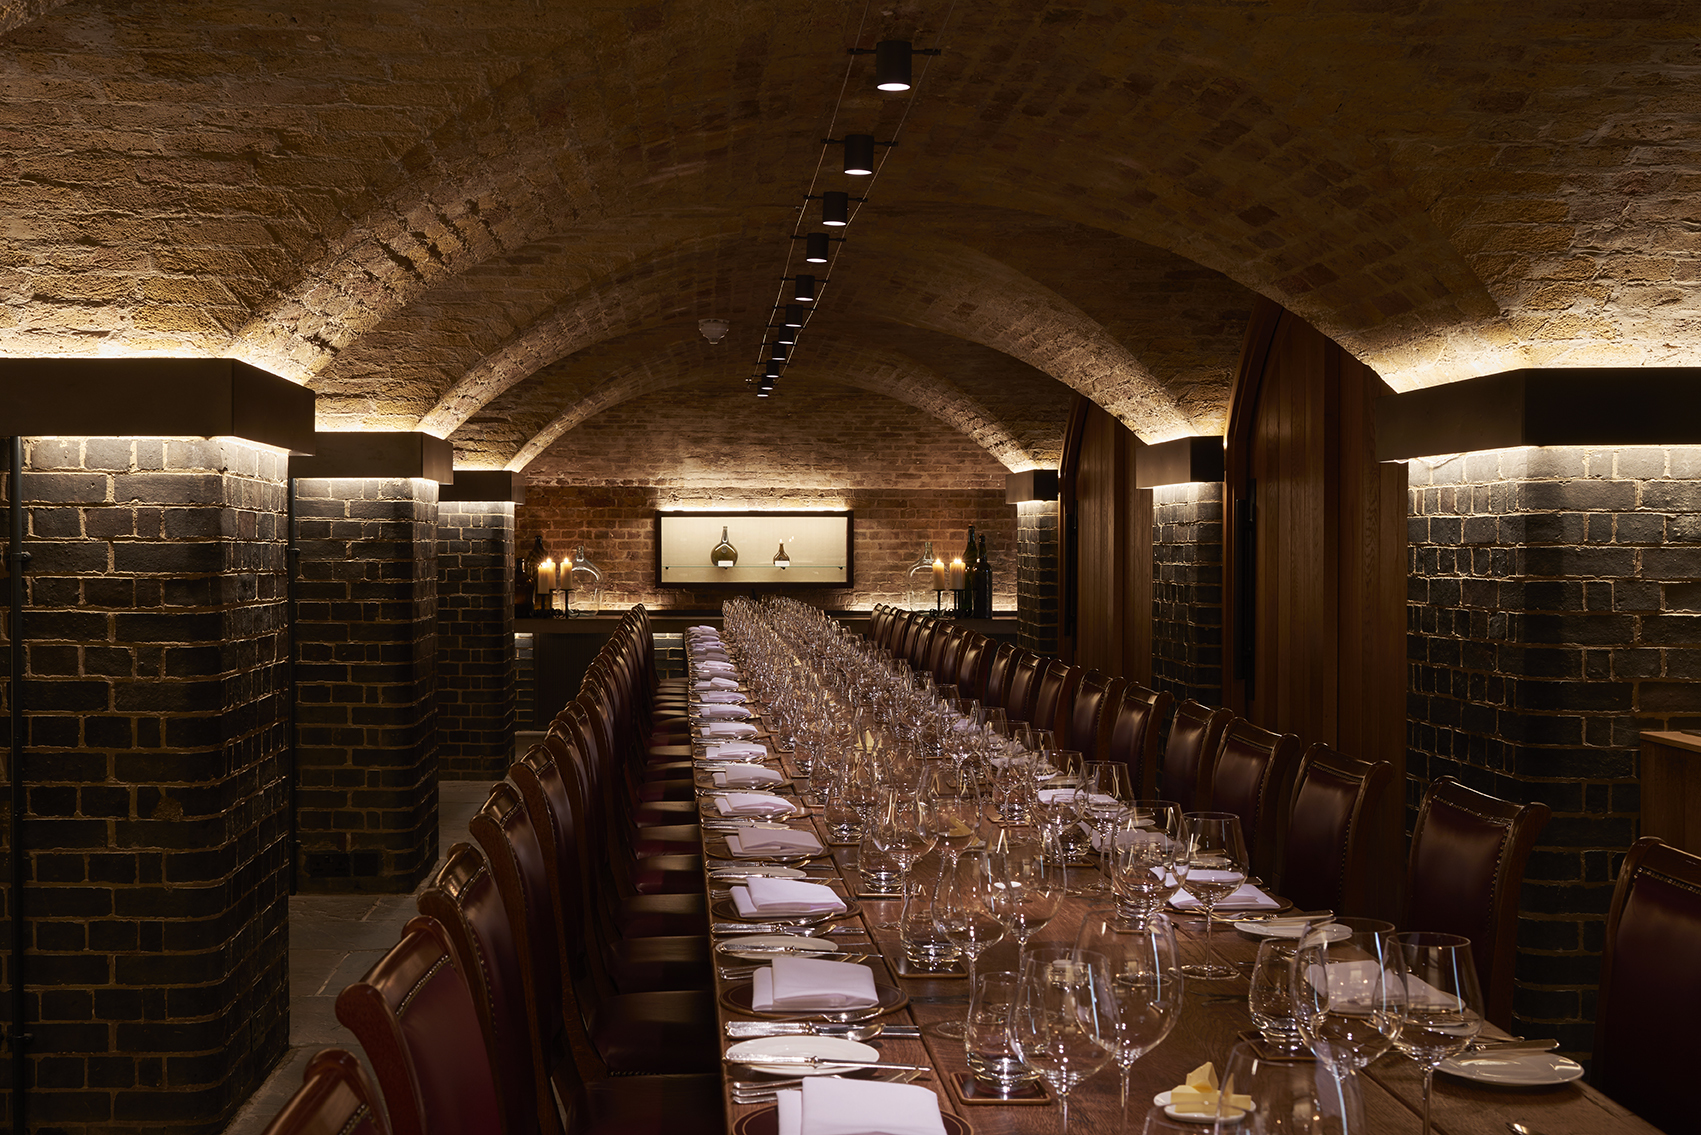 Soraa VIVID LED lamps have been installed at Berry Bros. & Rudd in London, U.K. Photo credit: James Newton.